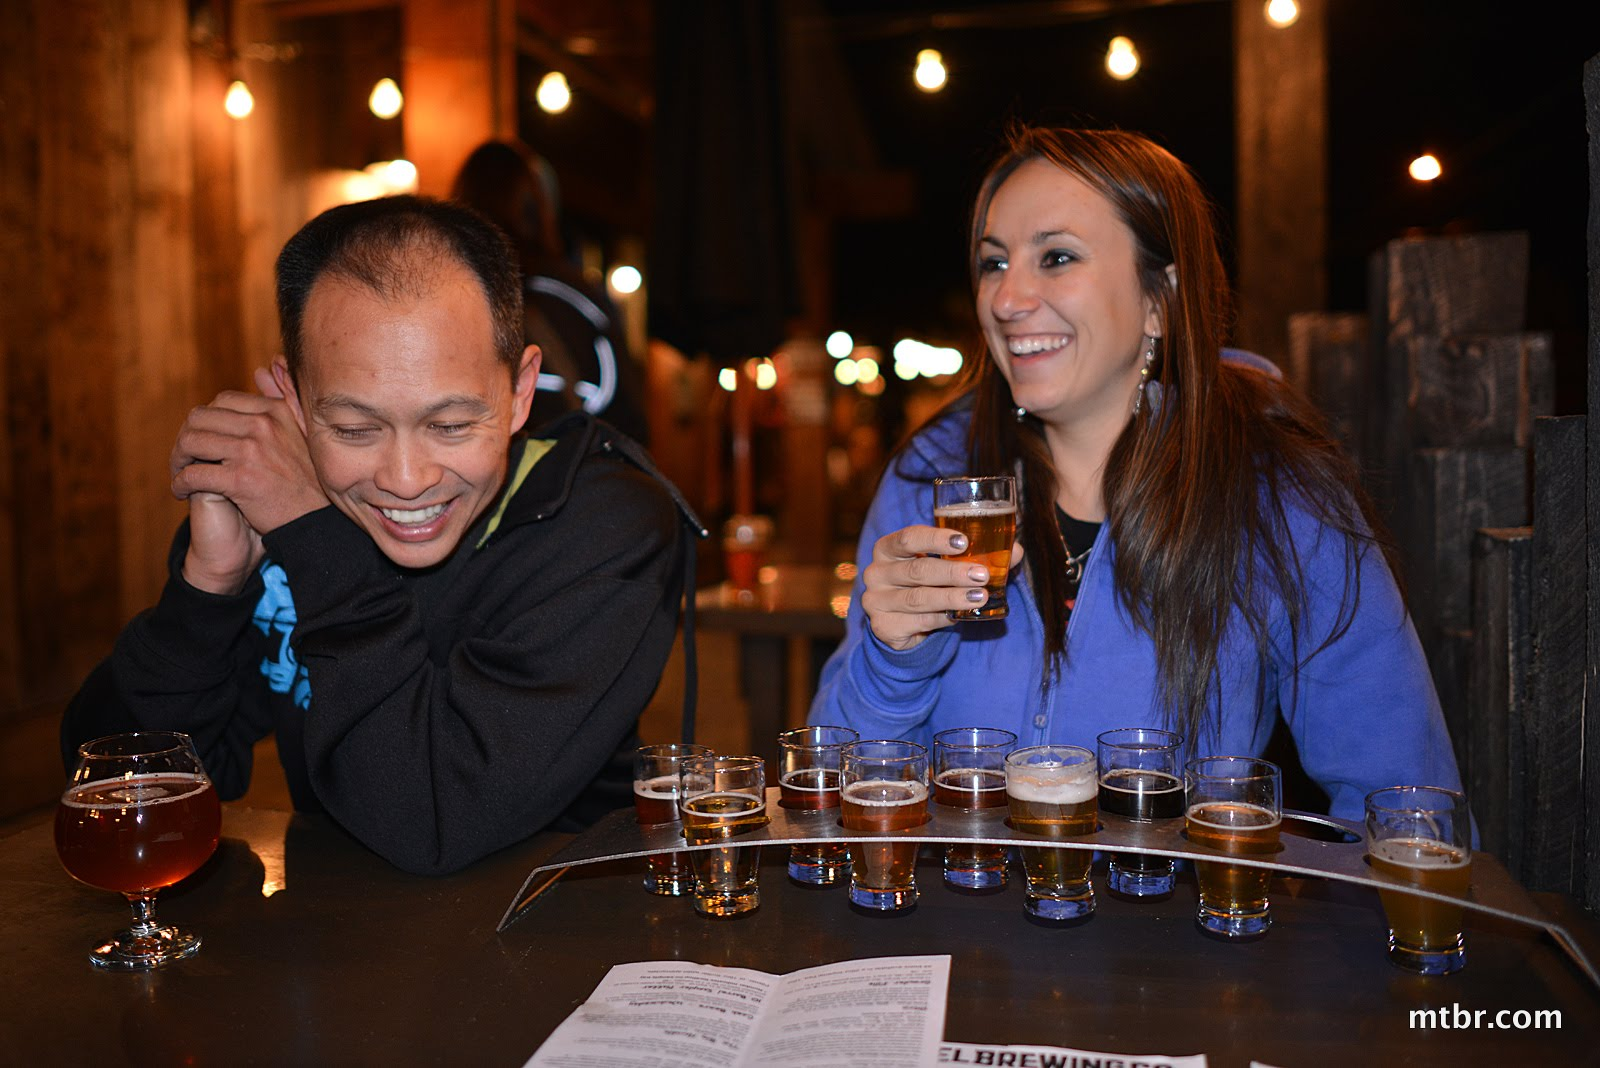 Francis and Sonya at 10 Barrel Brewery